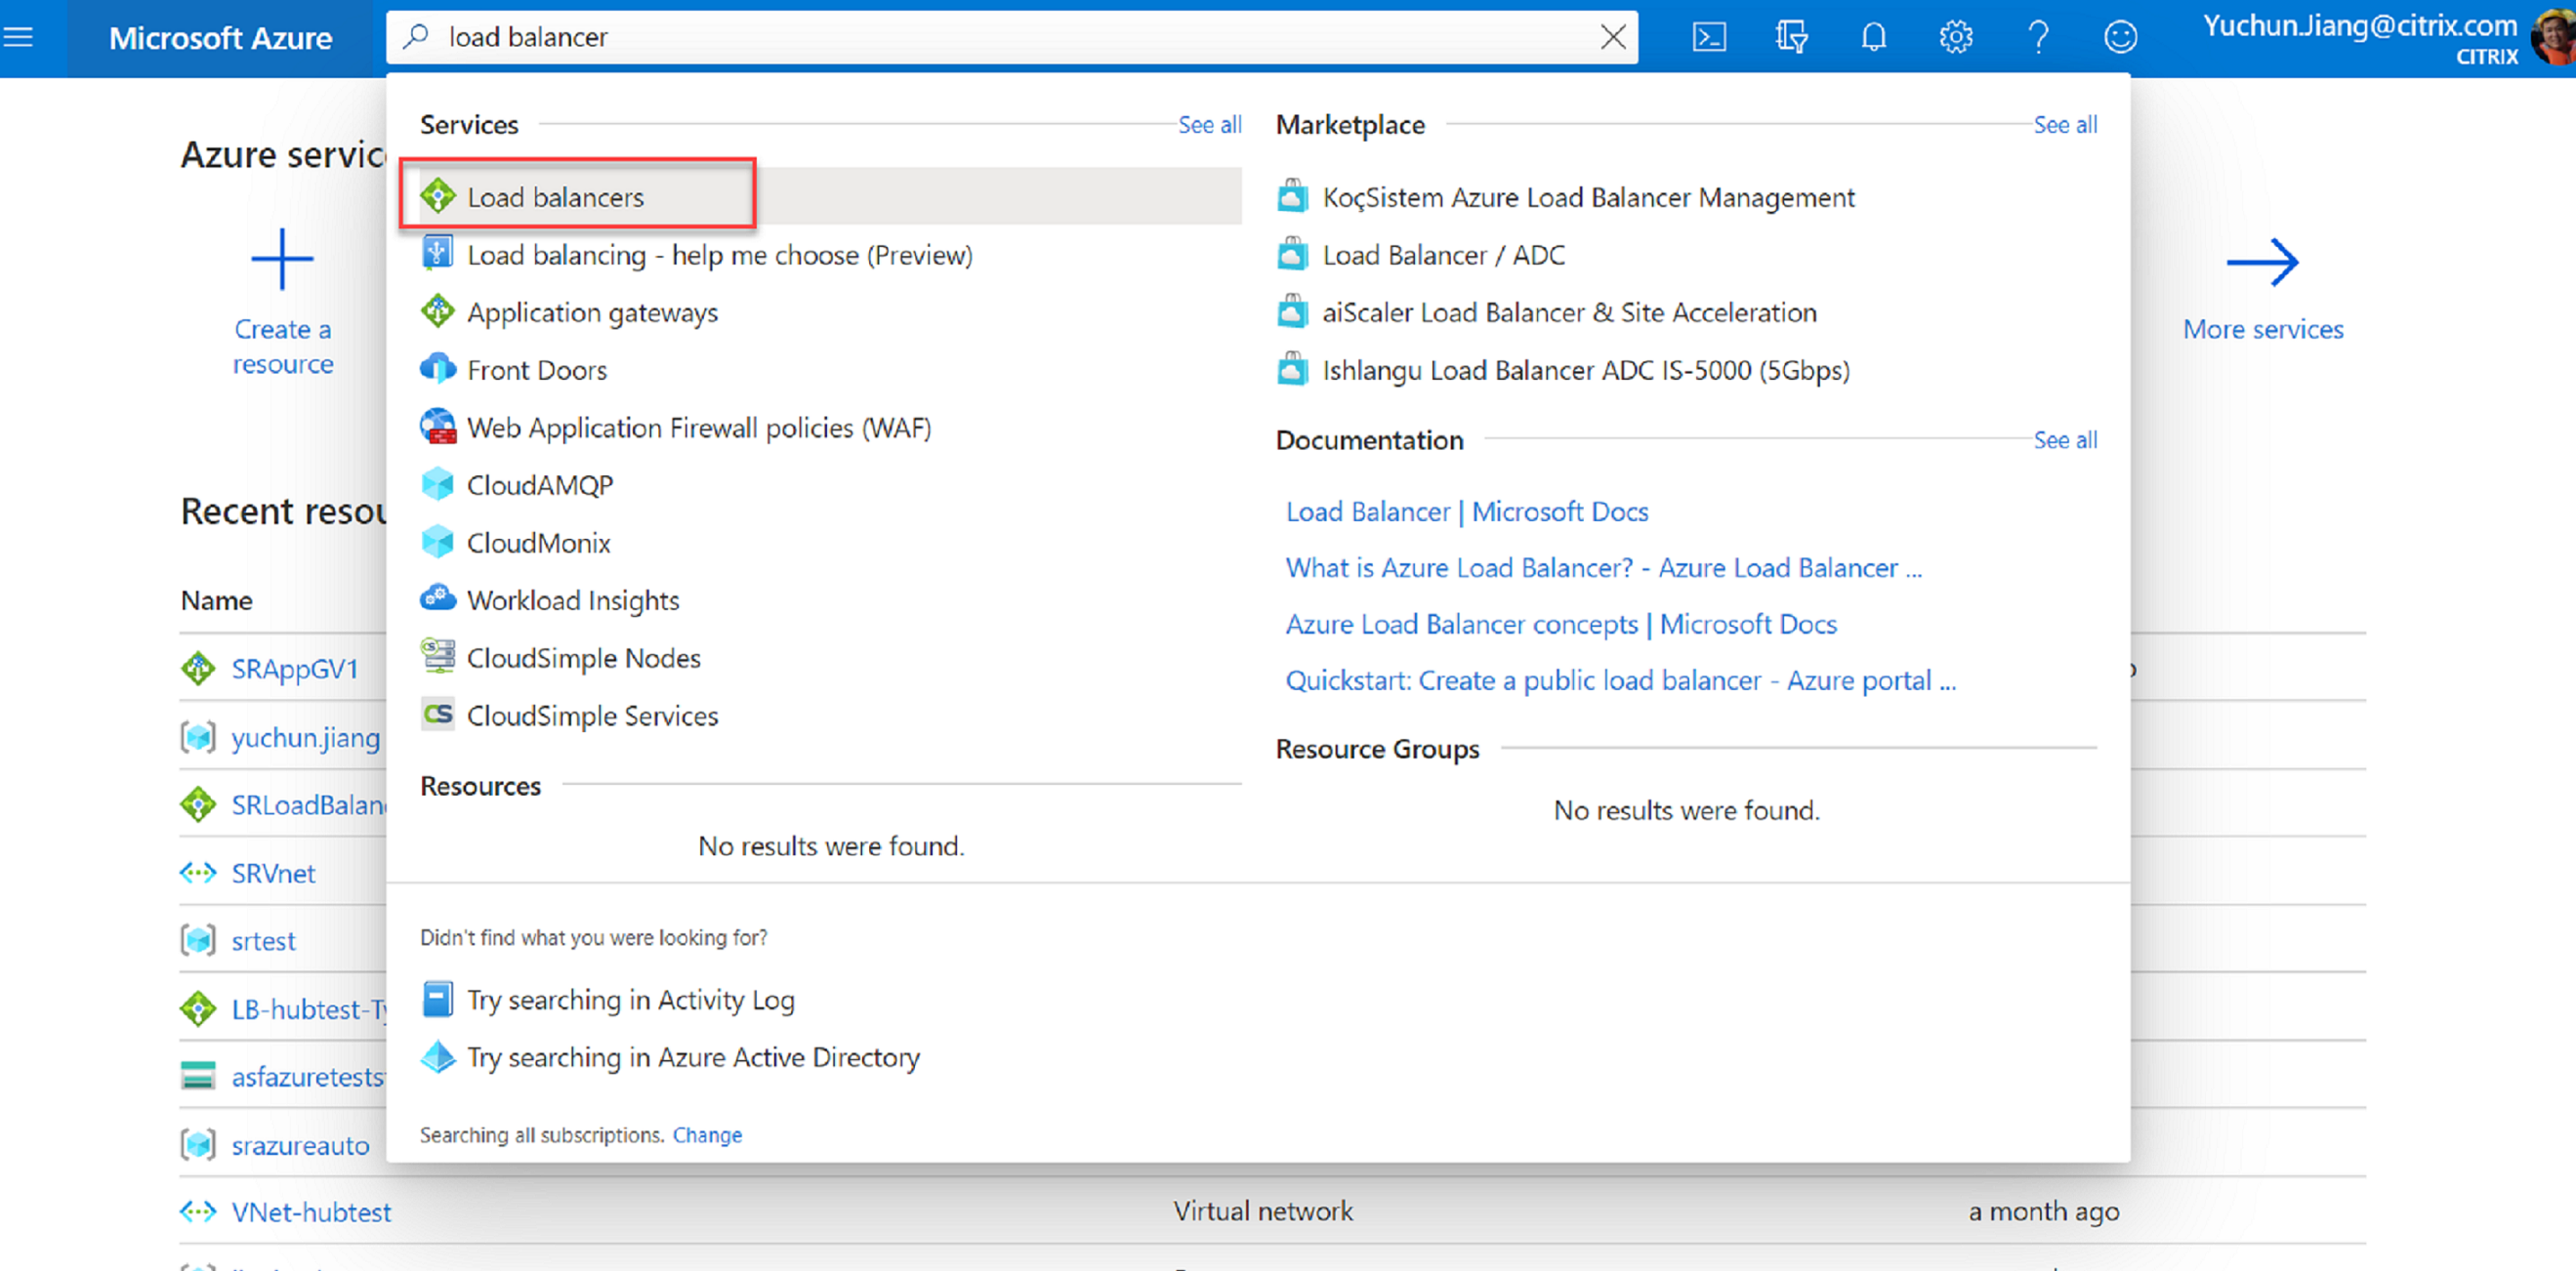 Search for Azure Load Balancer in the Marketplace